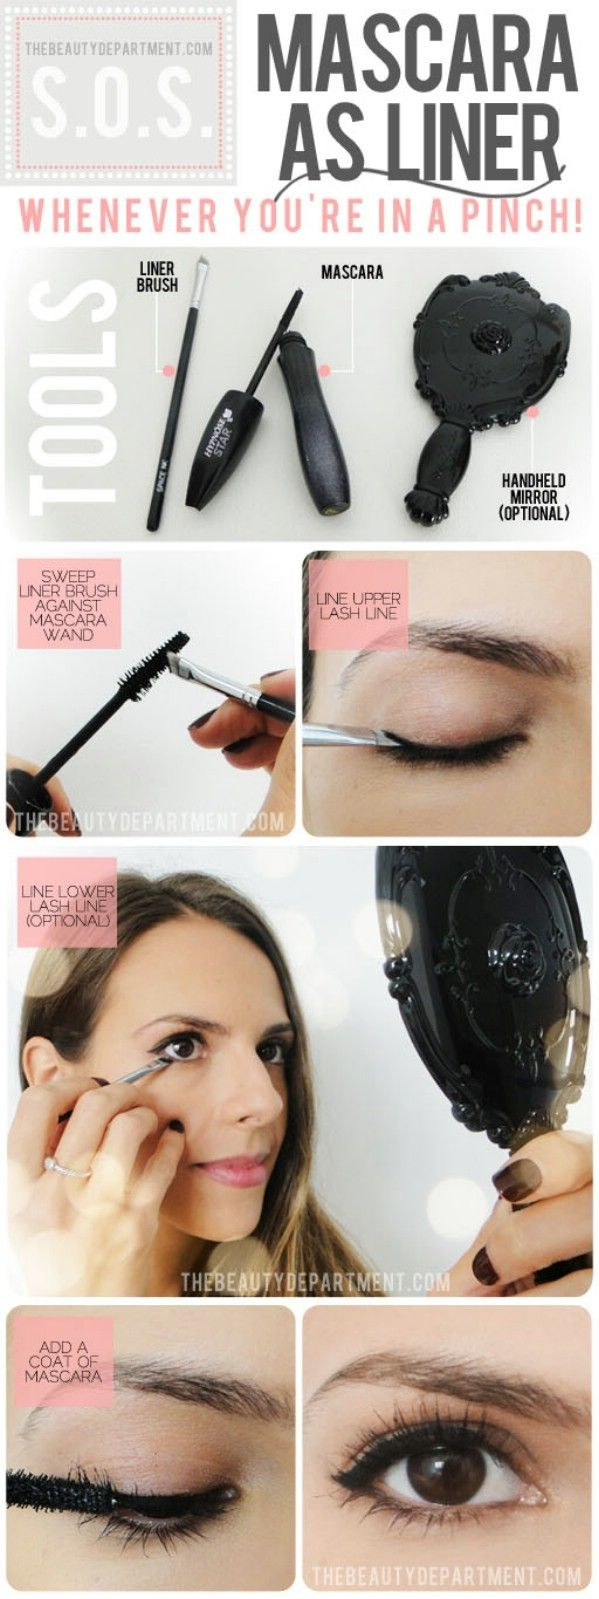 8 Beauty Hacks That Will Change Your Life in 30 Seconds